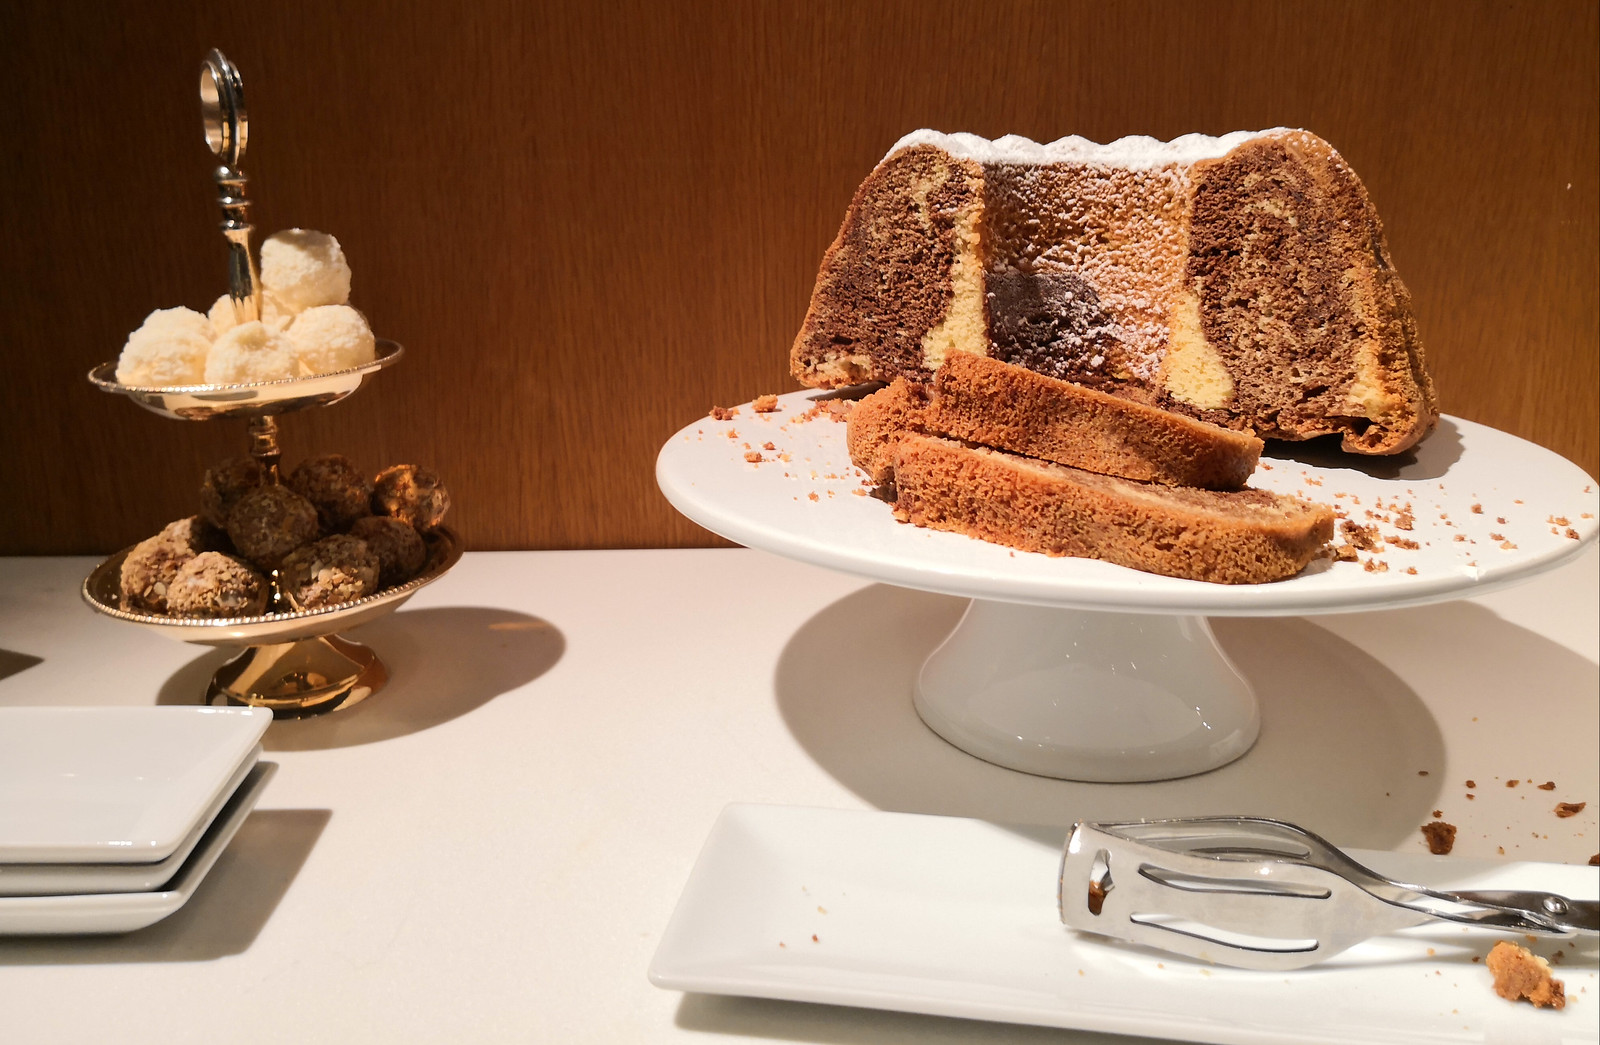 Marble ring cake and pralines